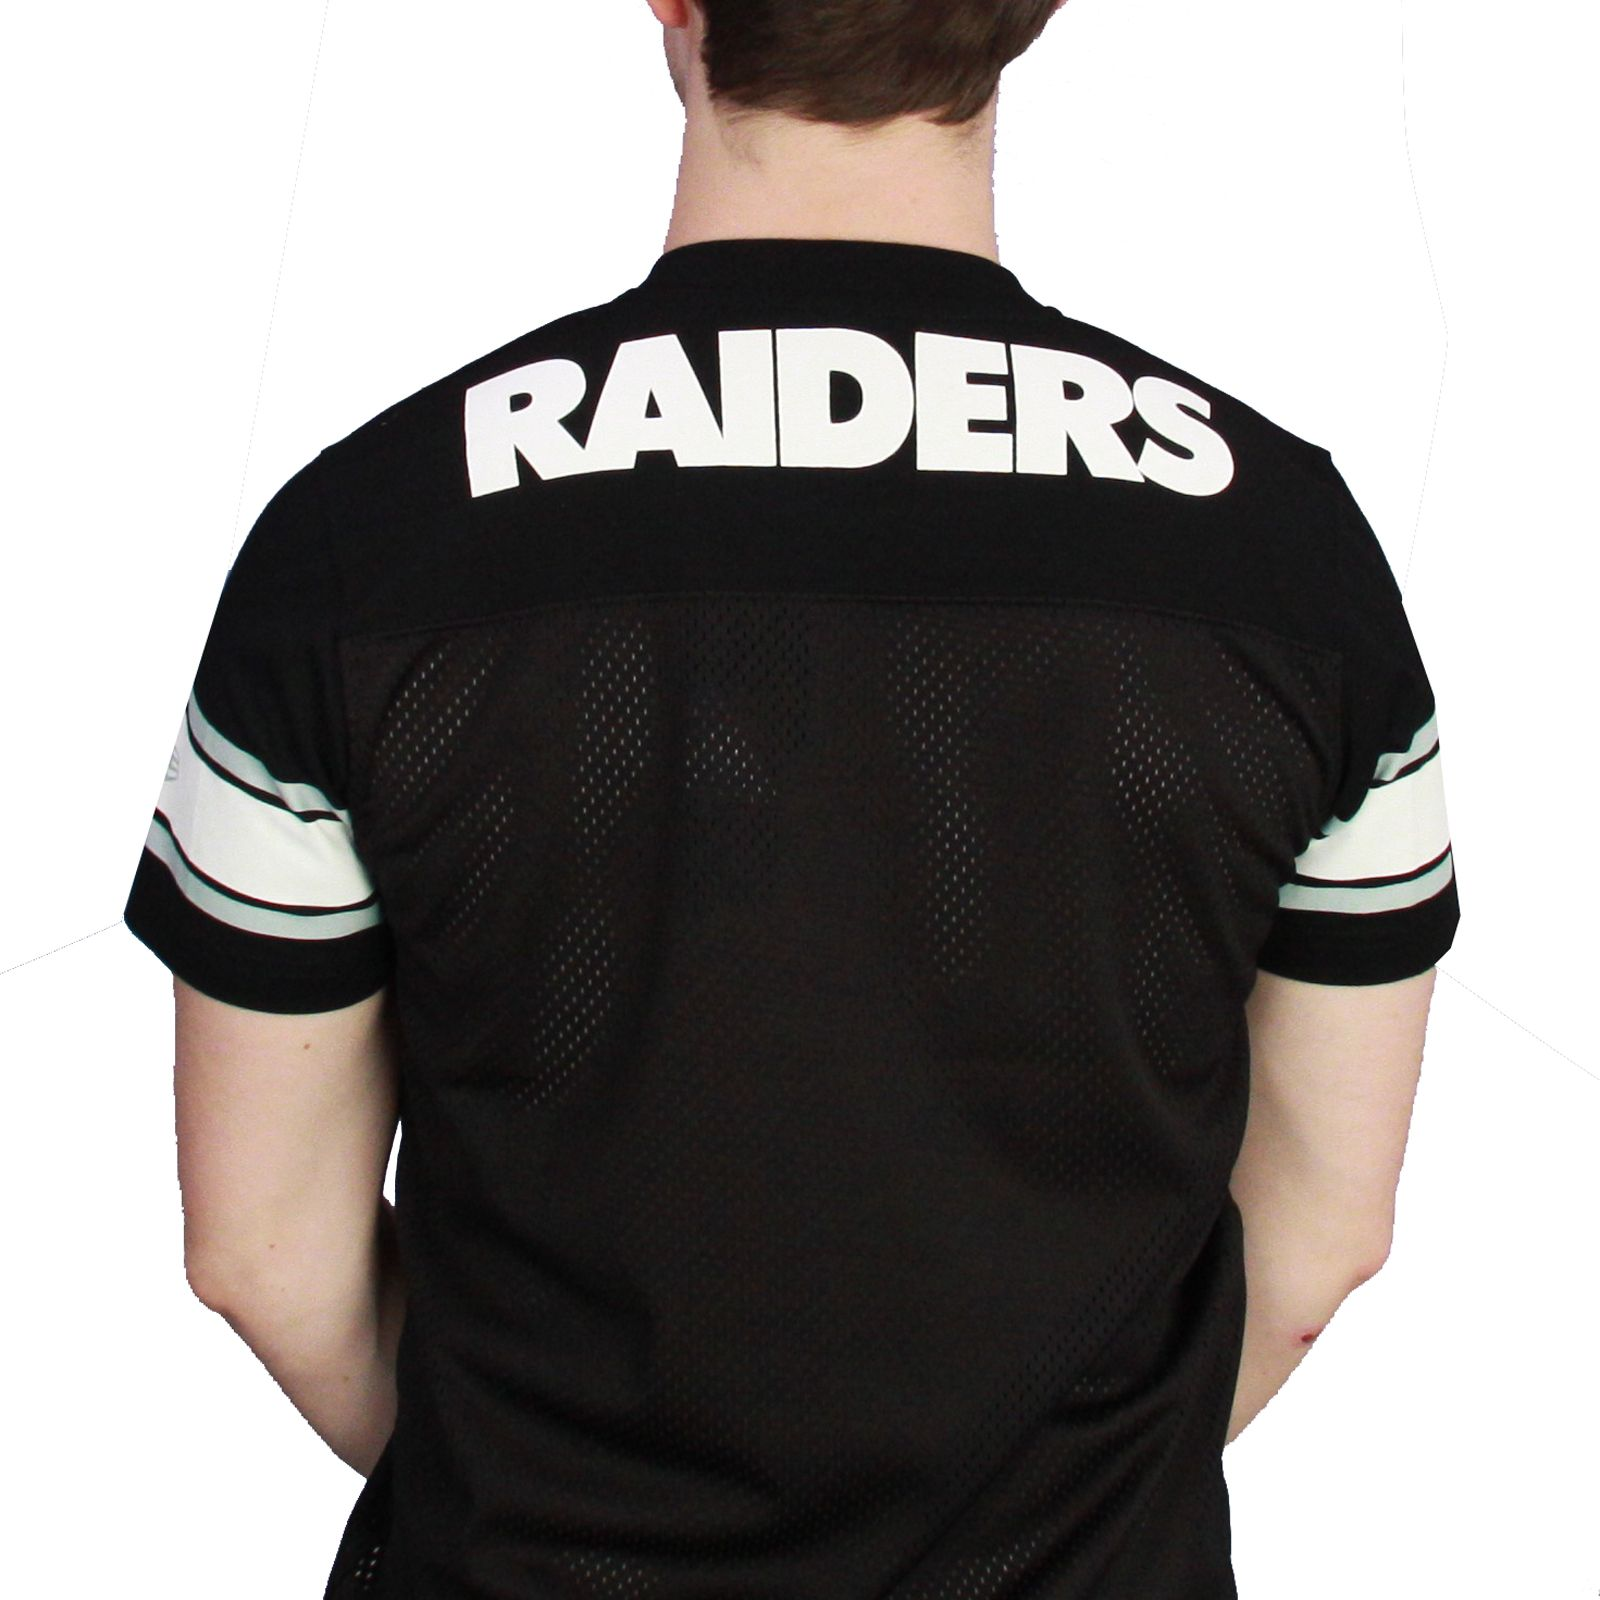 3f869af81 New Era NFL Supporters Jersey T-Shirt ~ Oakland Raiders